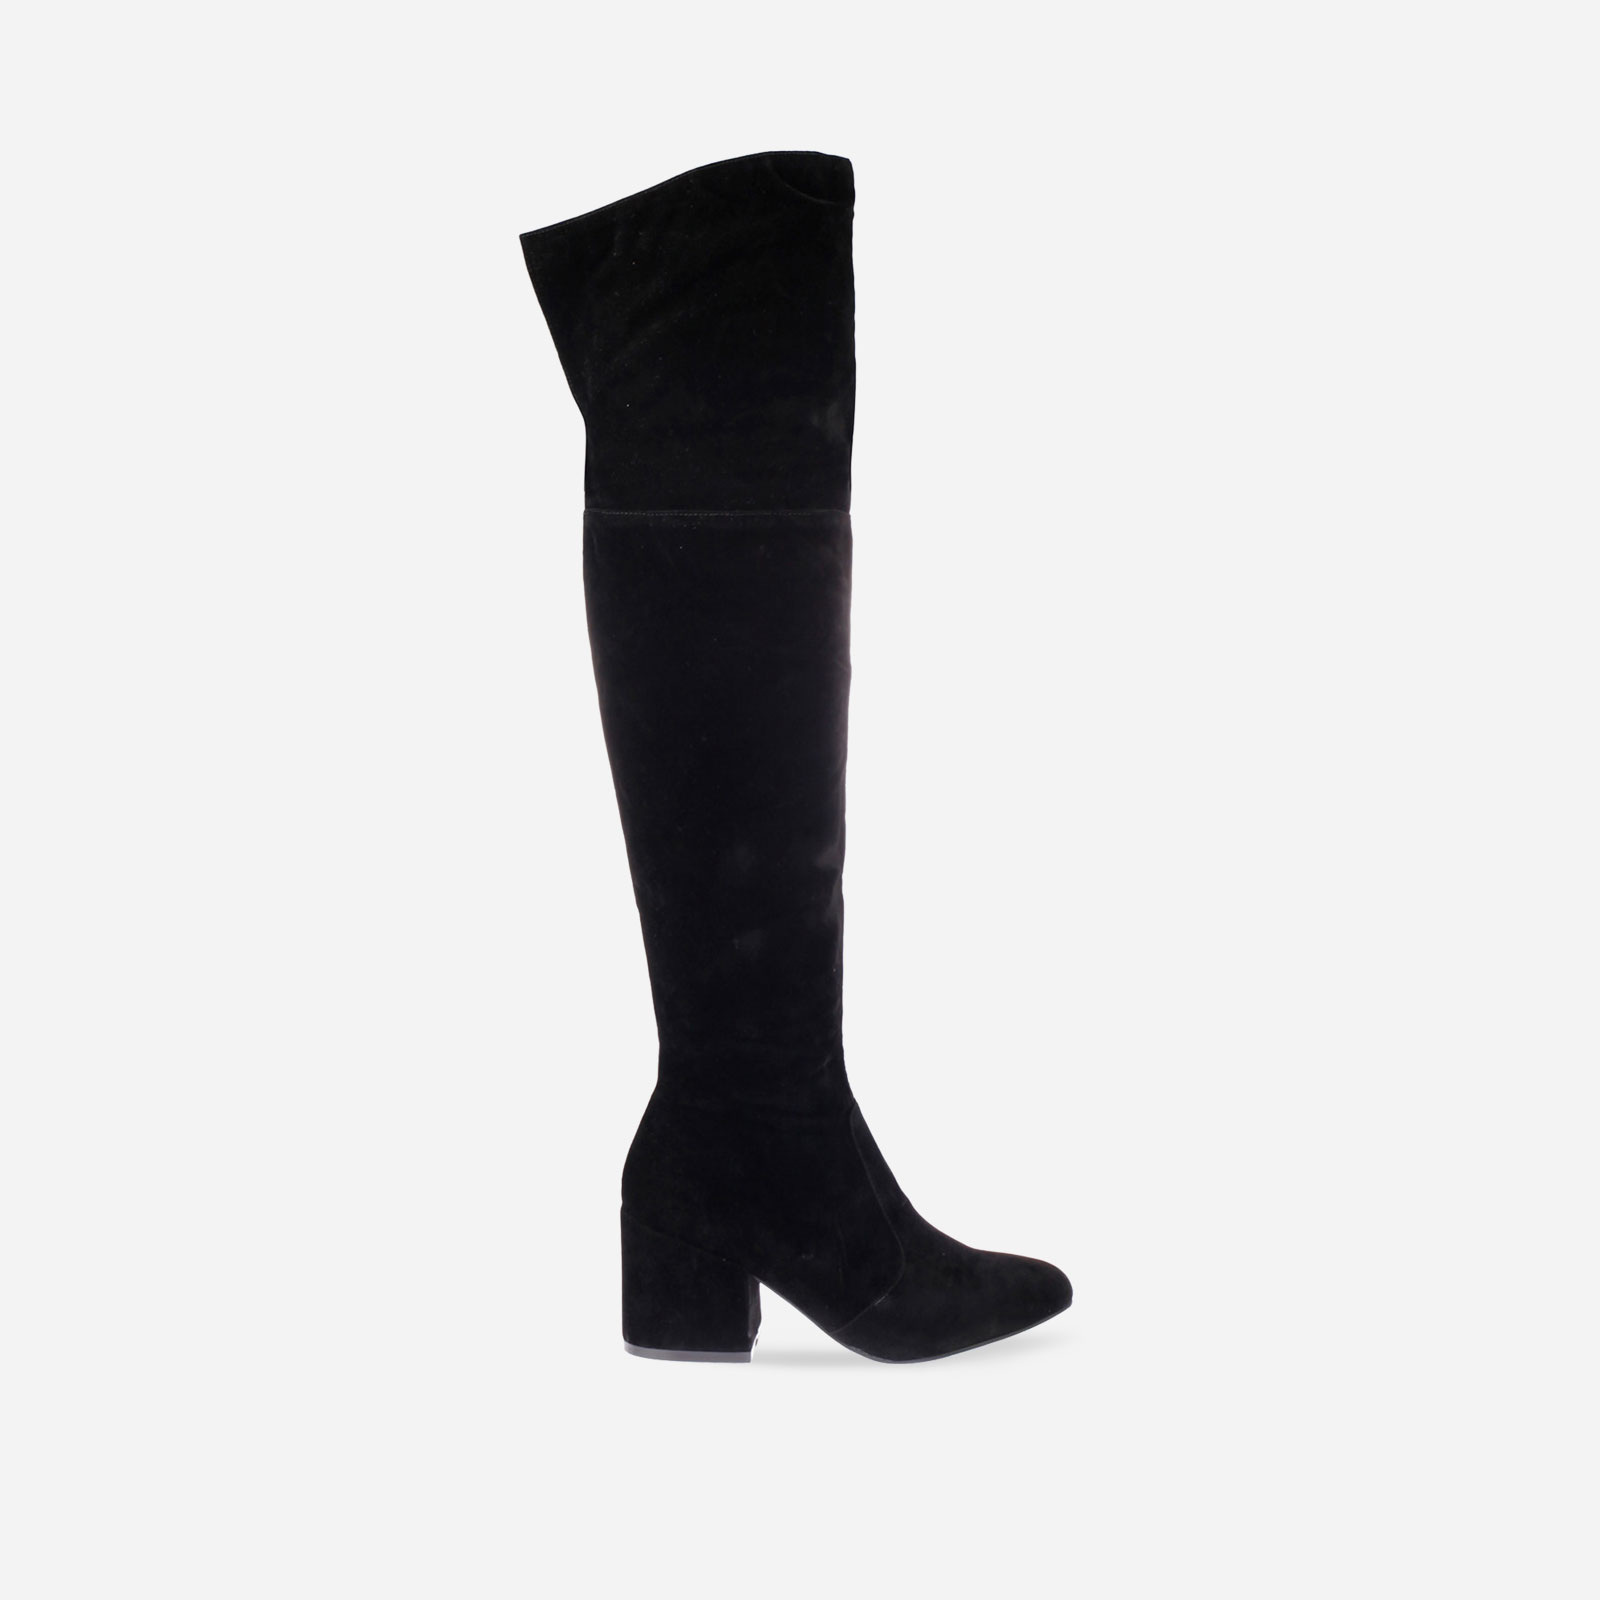 Harmony Over The Knee Boot With Midi Heel In Black Faux Suede Image 1